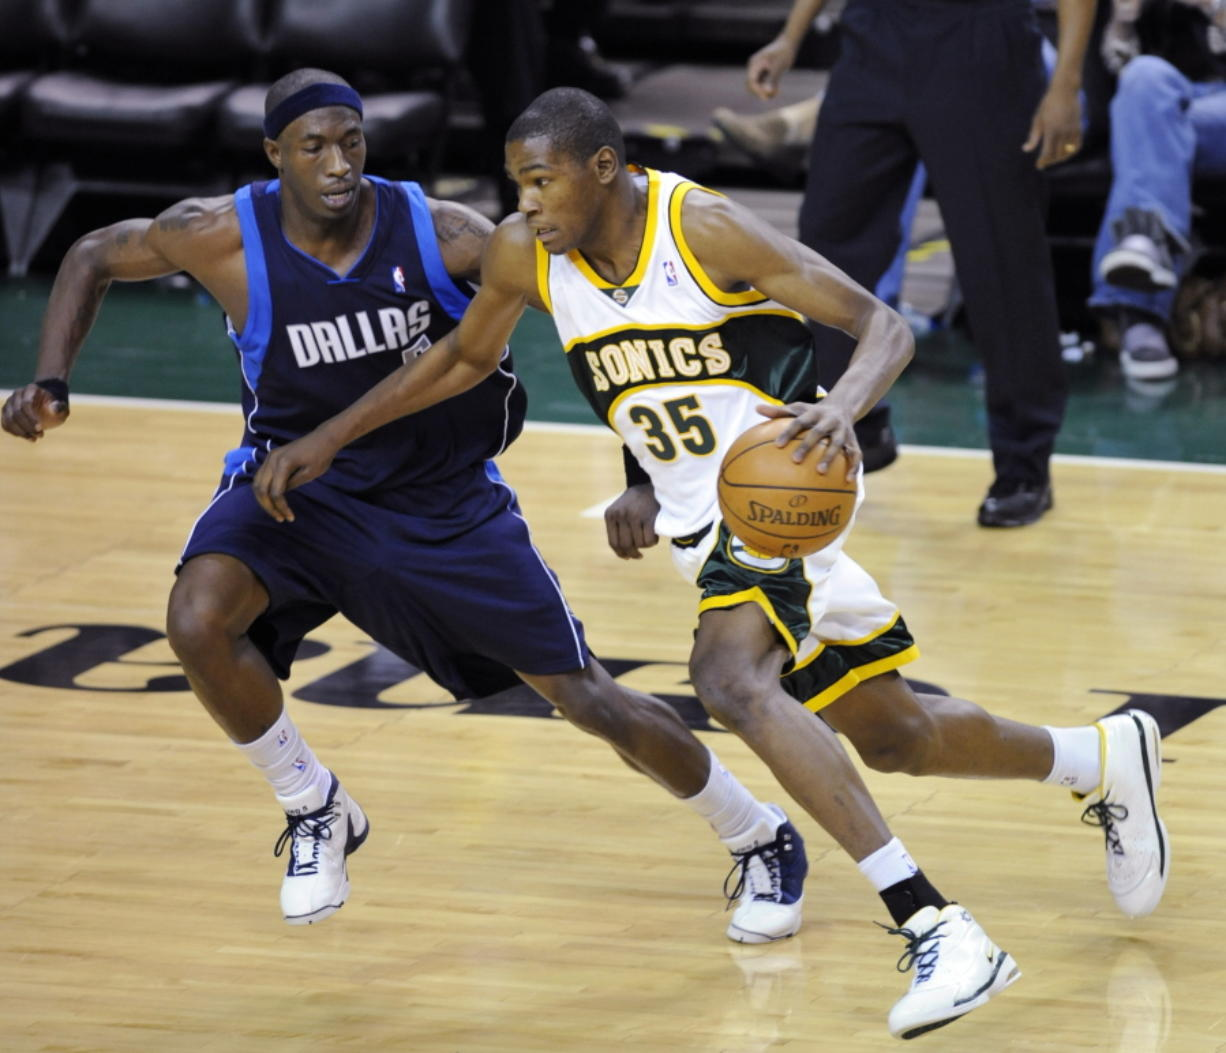 From 2008, Seattle SuperSonics' Kevin Durant (35) tries to drive past Dallas Mavericks' Josh Howard during an NBA game at KeyArena in Seattle. KeyArena is getting an appropriate send off Friday, Oct. 5, 2018, with an NBA game being played once again under its roof as the former home of the SuperSonics will see the Golden State Warriors meet the Sacramento Kings in a preseason game. Afterward, the building will be shuttered and remodeled.